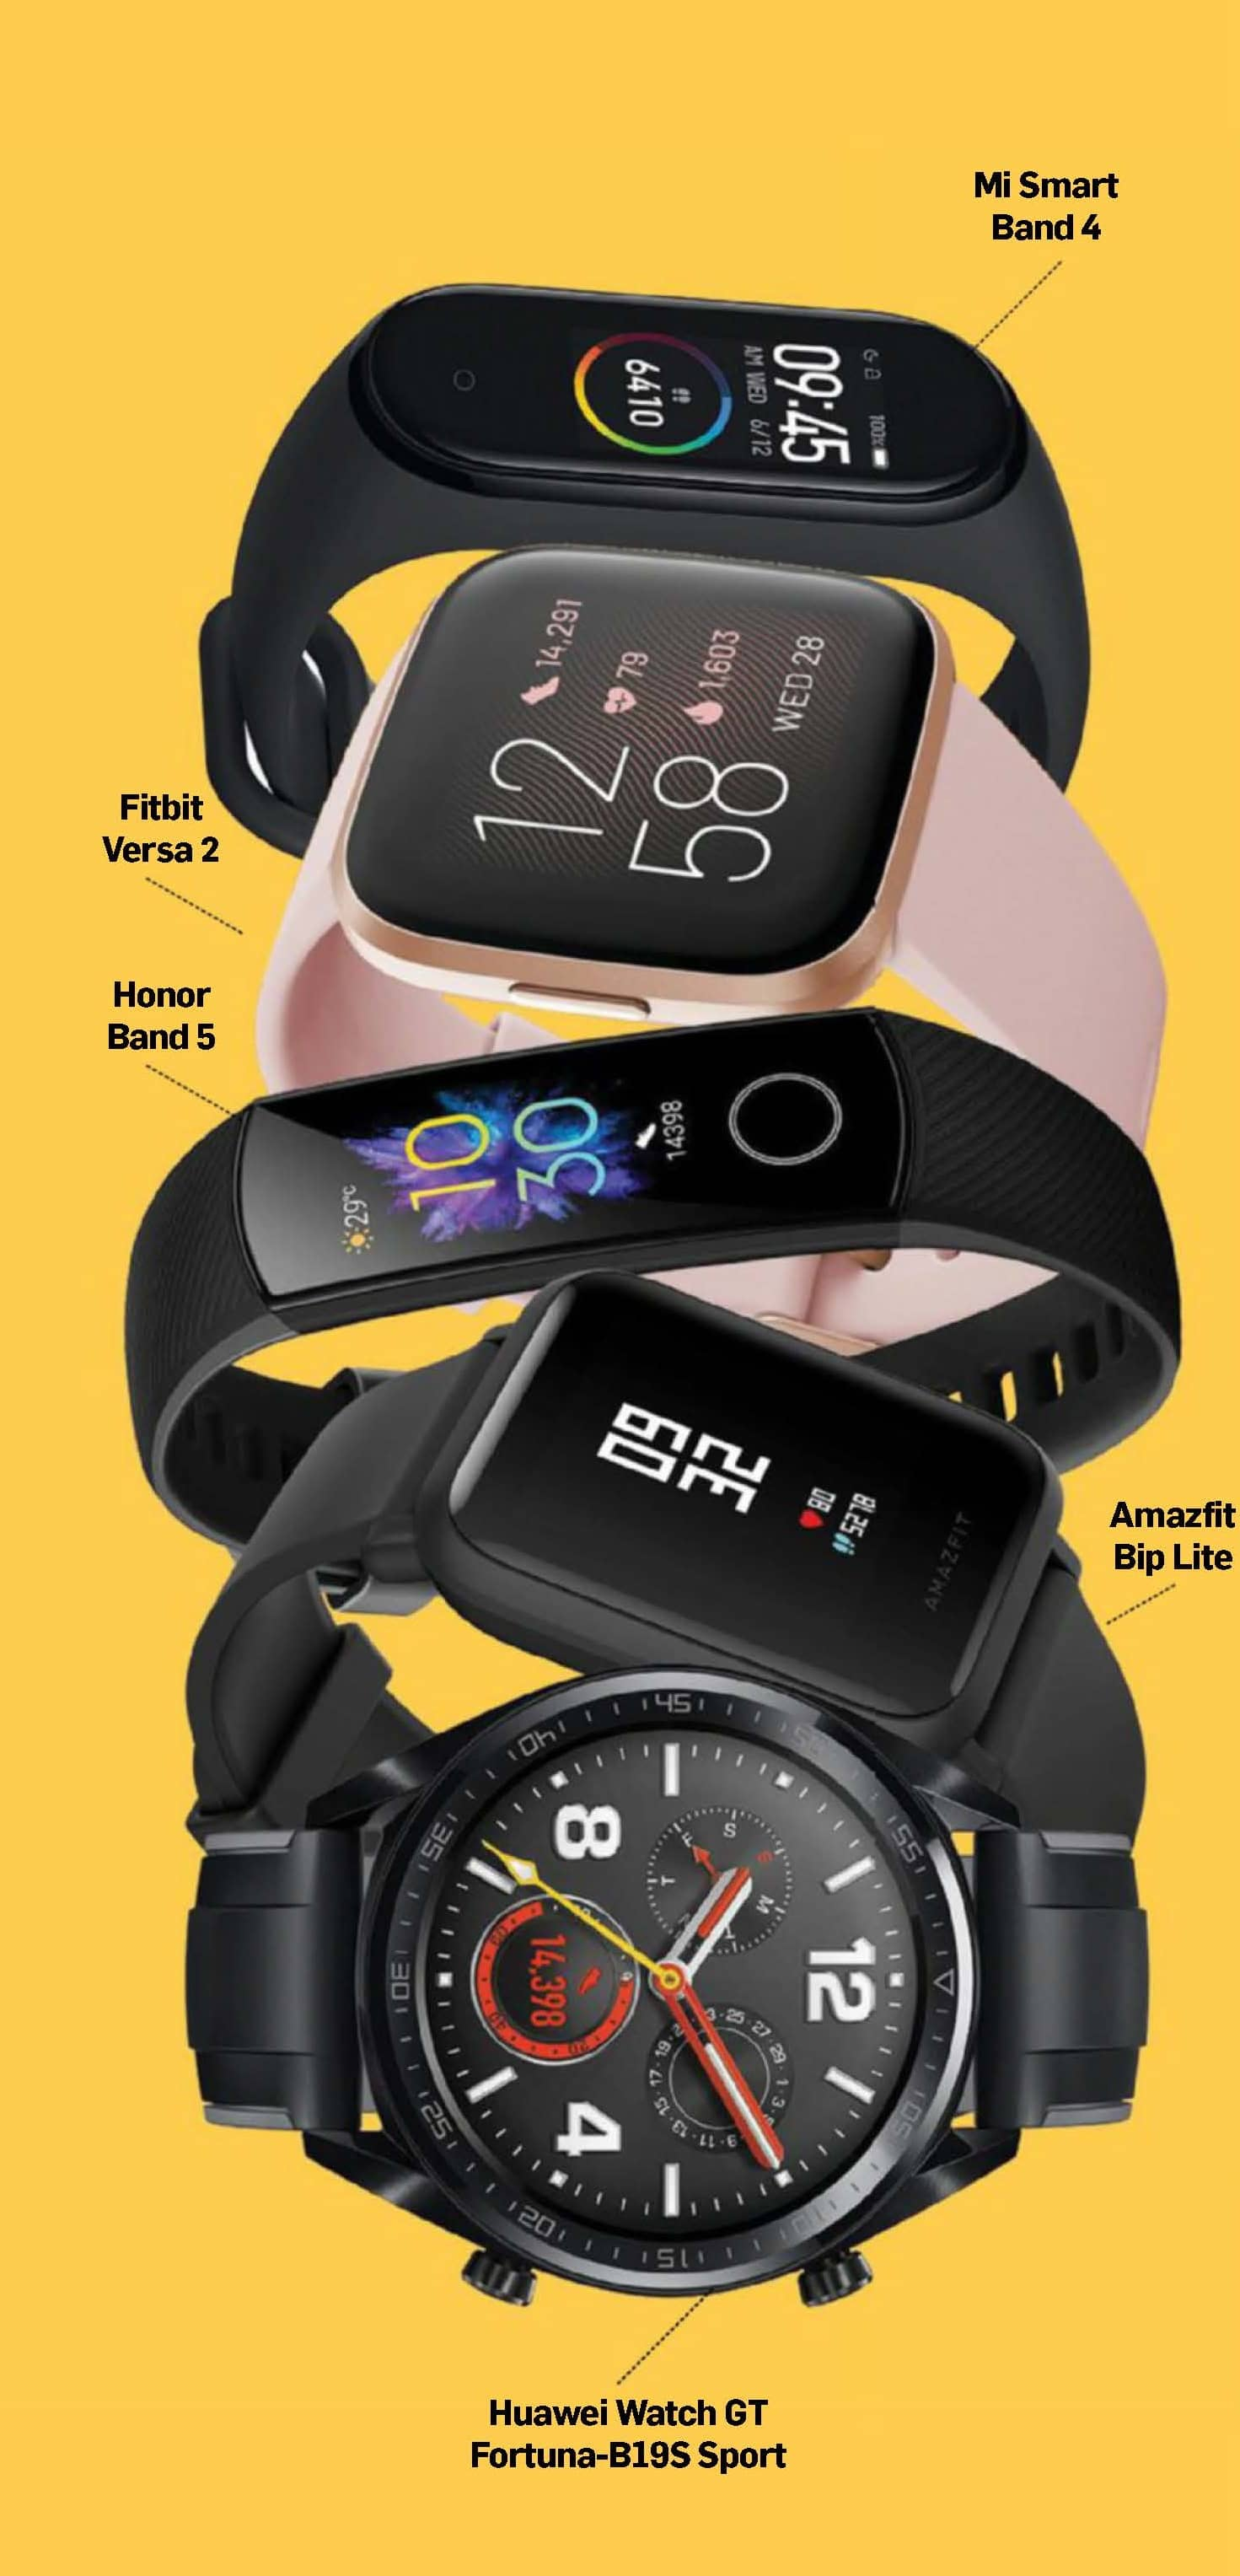 Wearables With Sleep Trackers